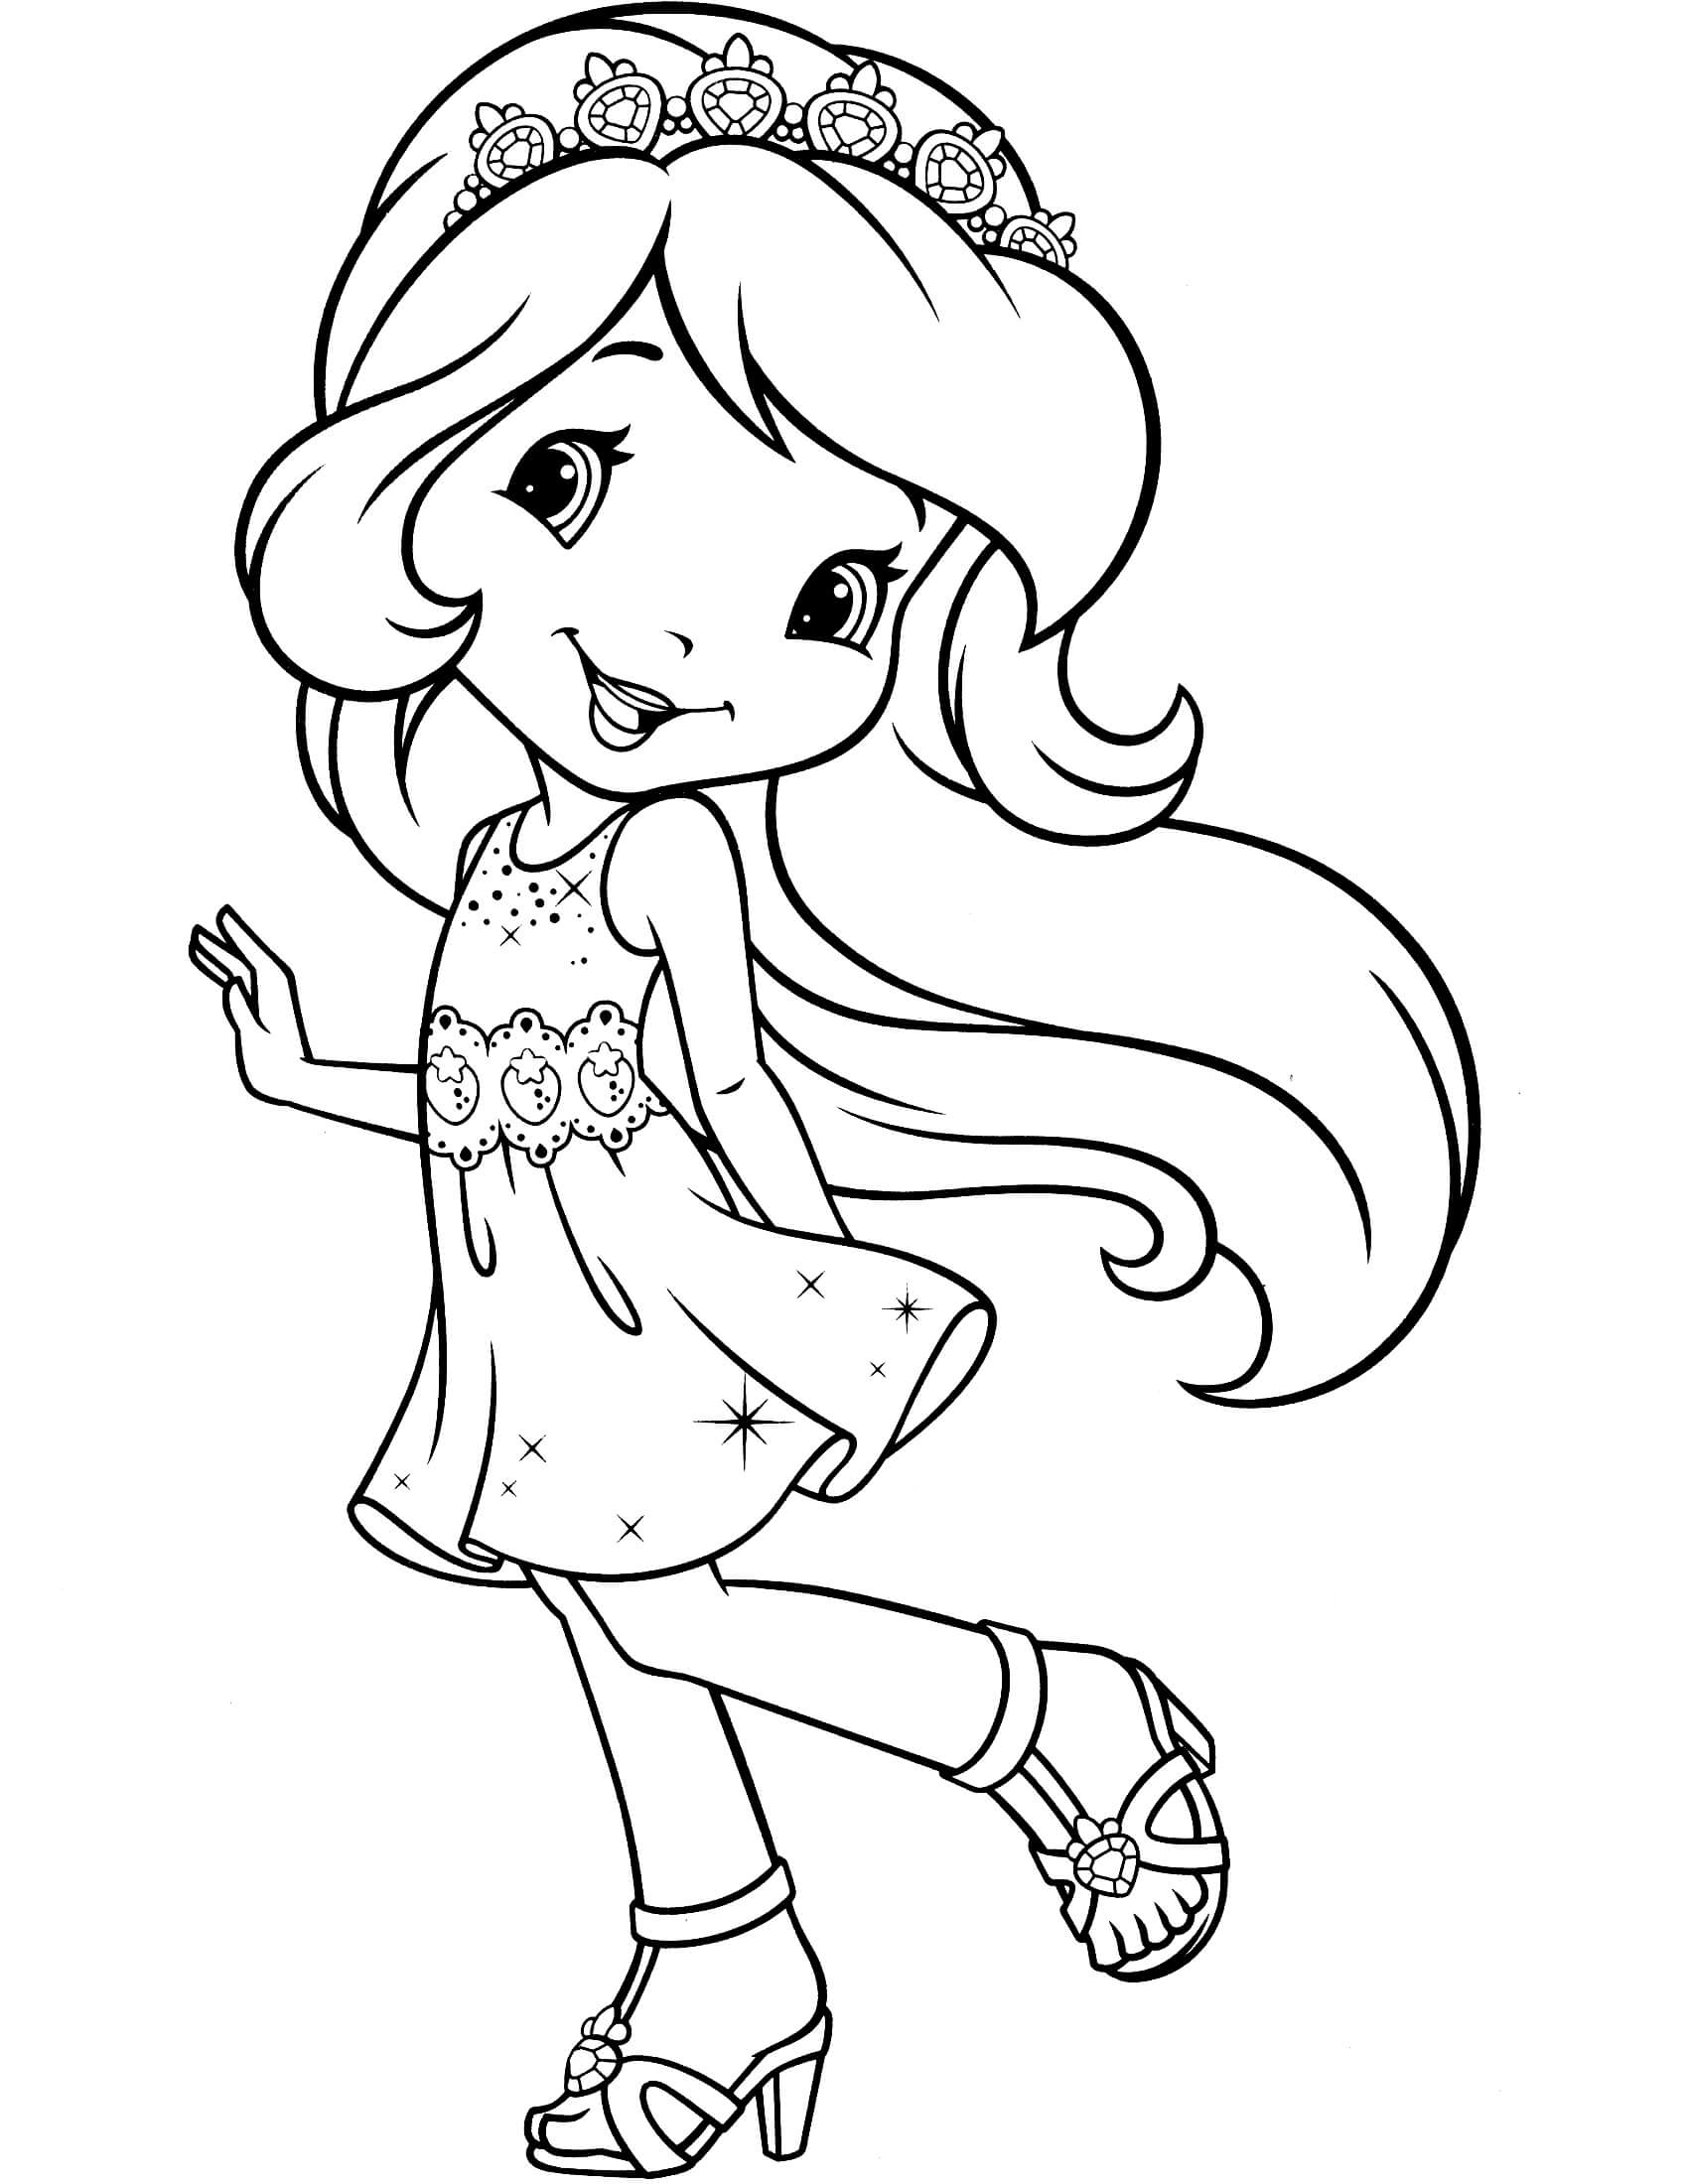 strawberry shortcake drawing pages strawberry shortcake 50 coloringcolorcom shortcake pages strawberry drawing